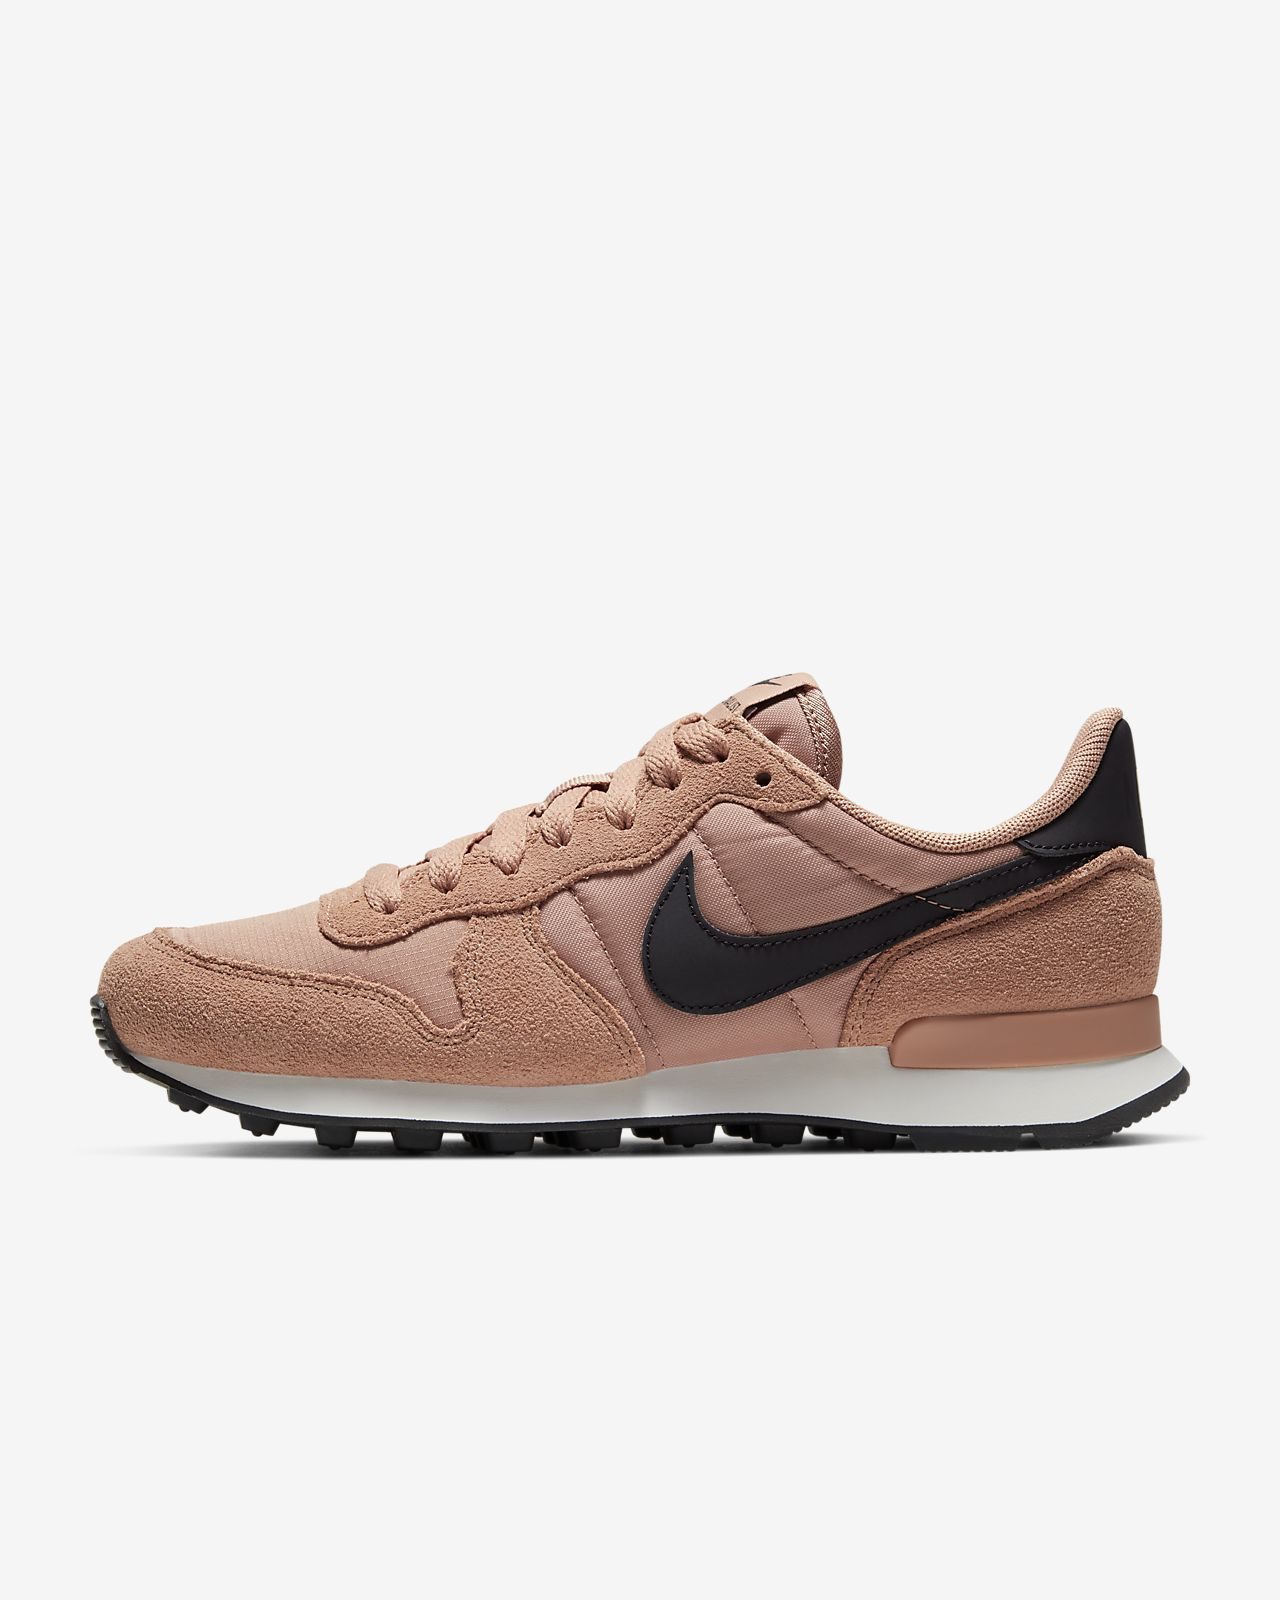 quality design 67fd6 84893 Women s Shoe. Nike Internationalist